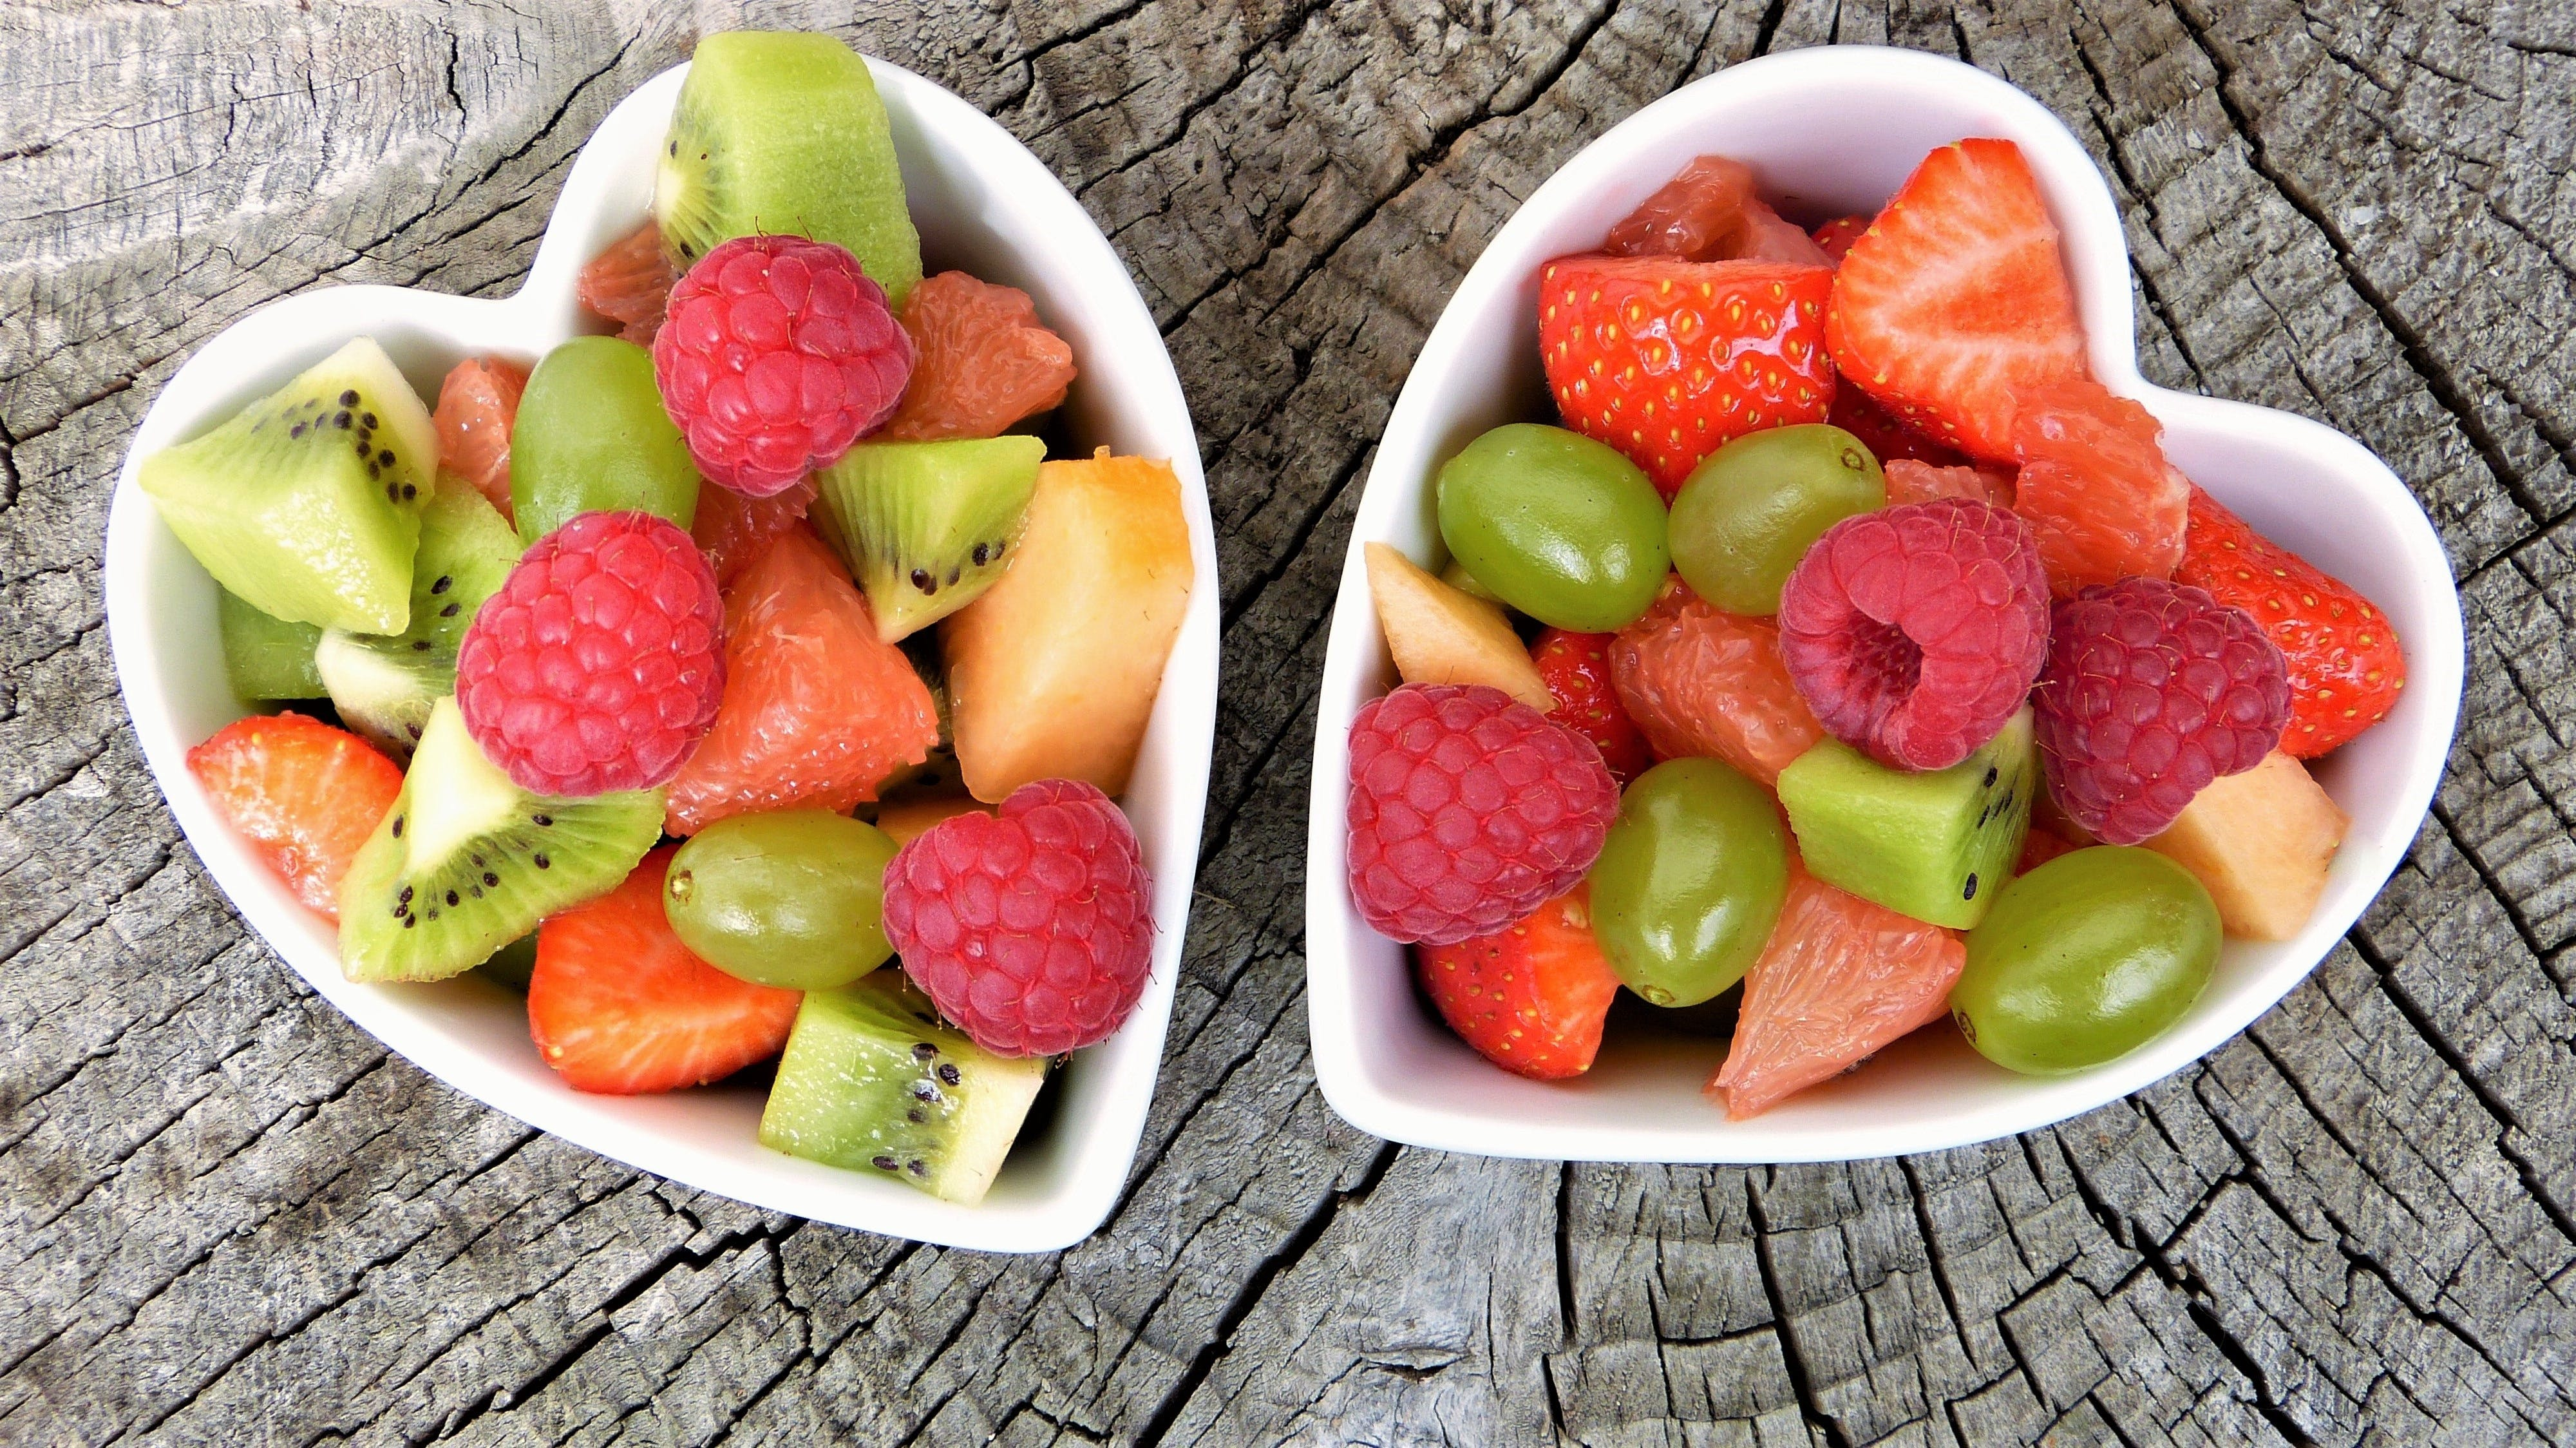 Free stock photo of berries, bio, bless you, bowls